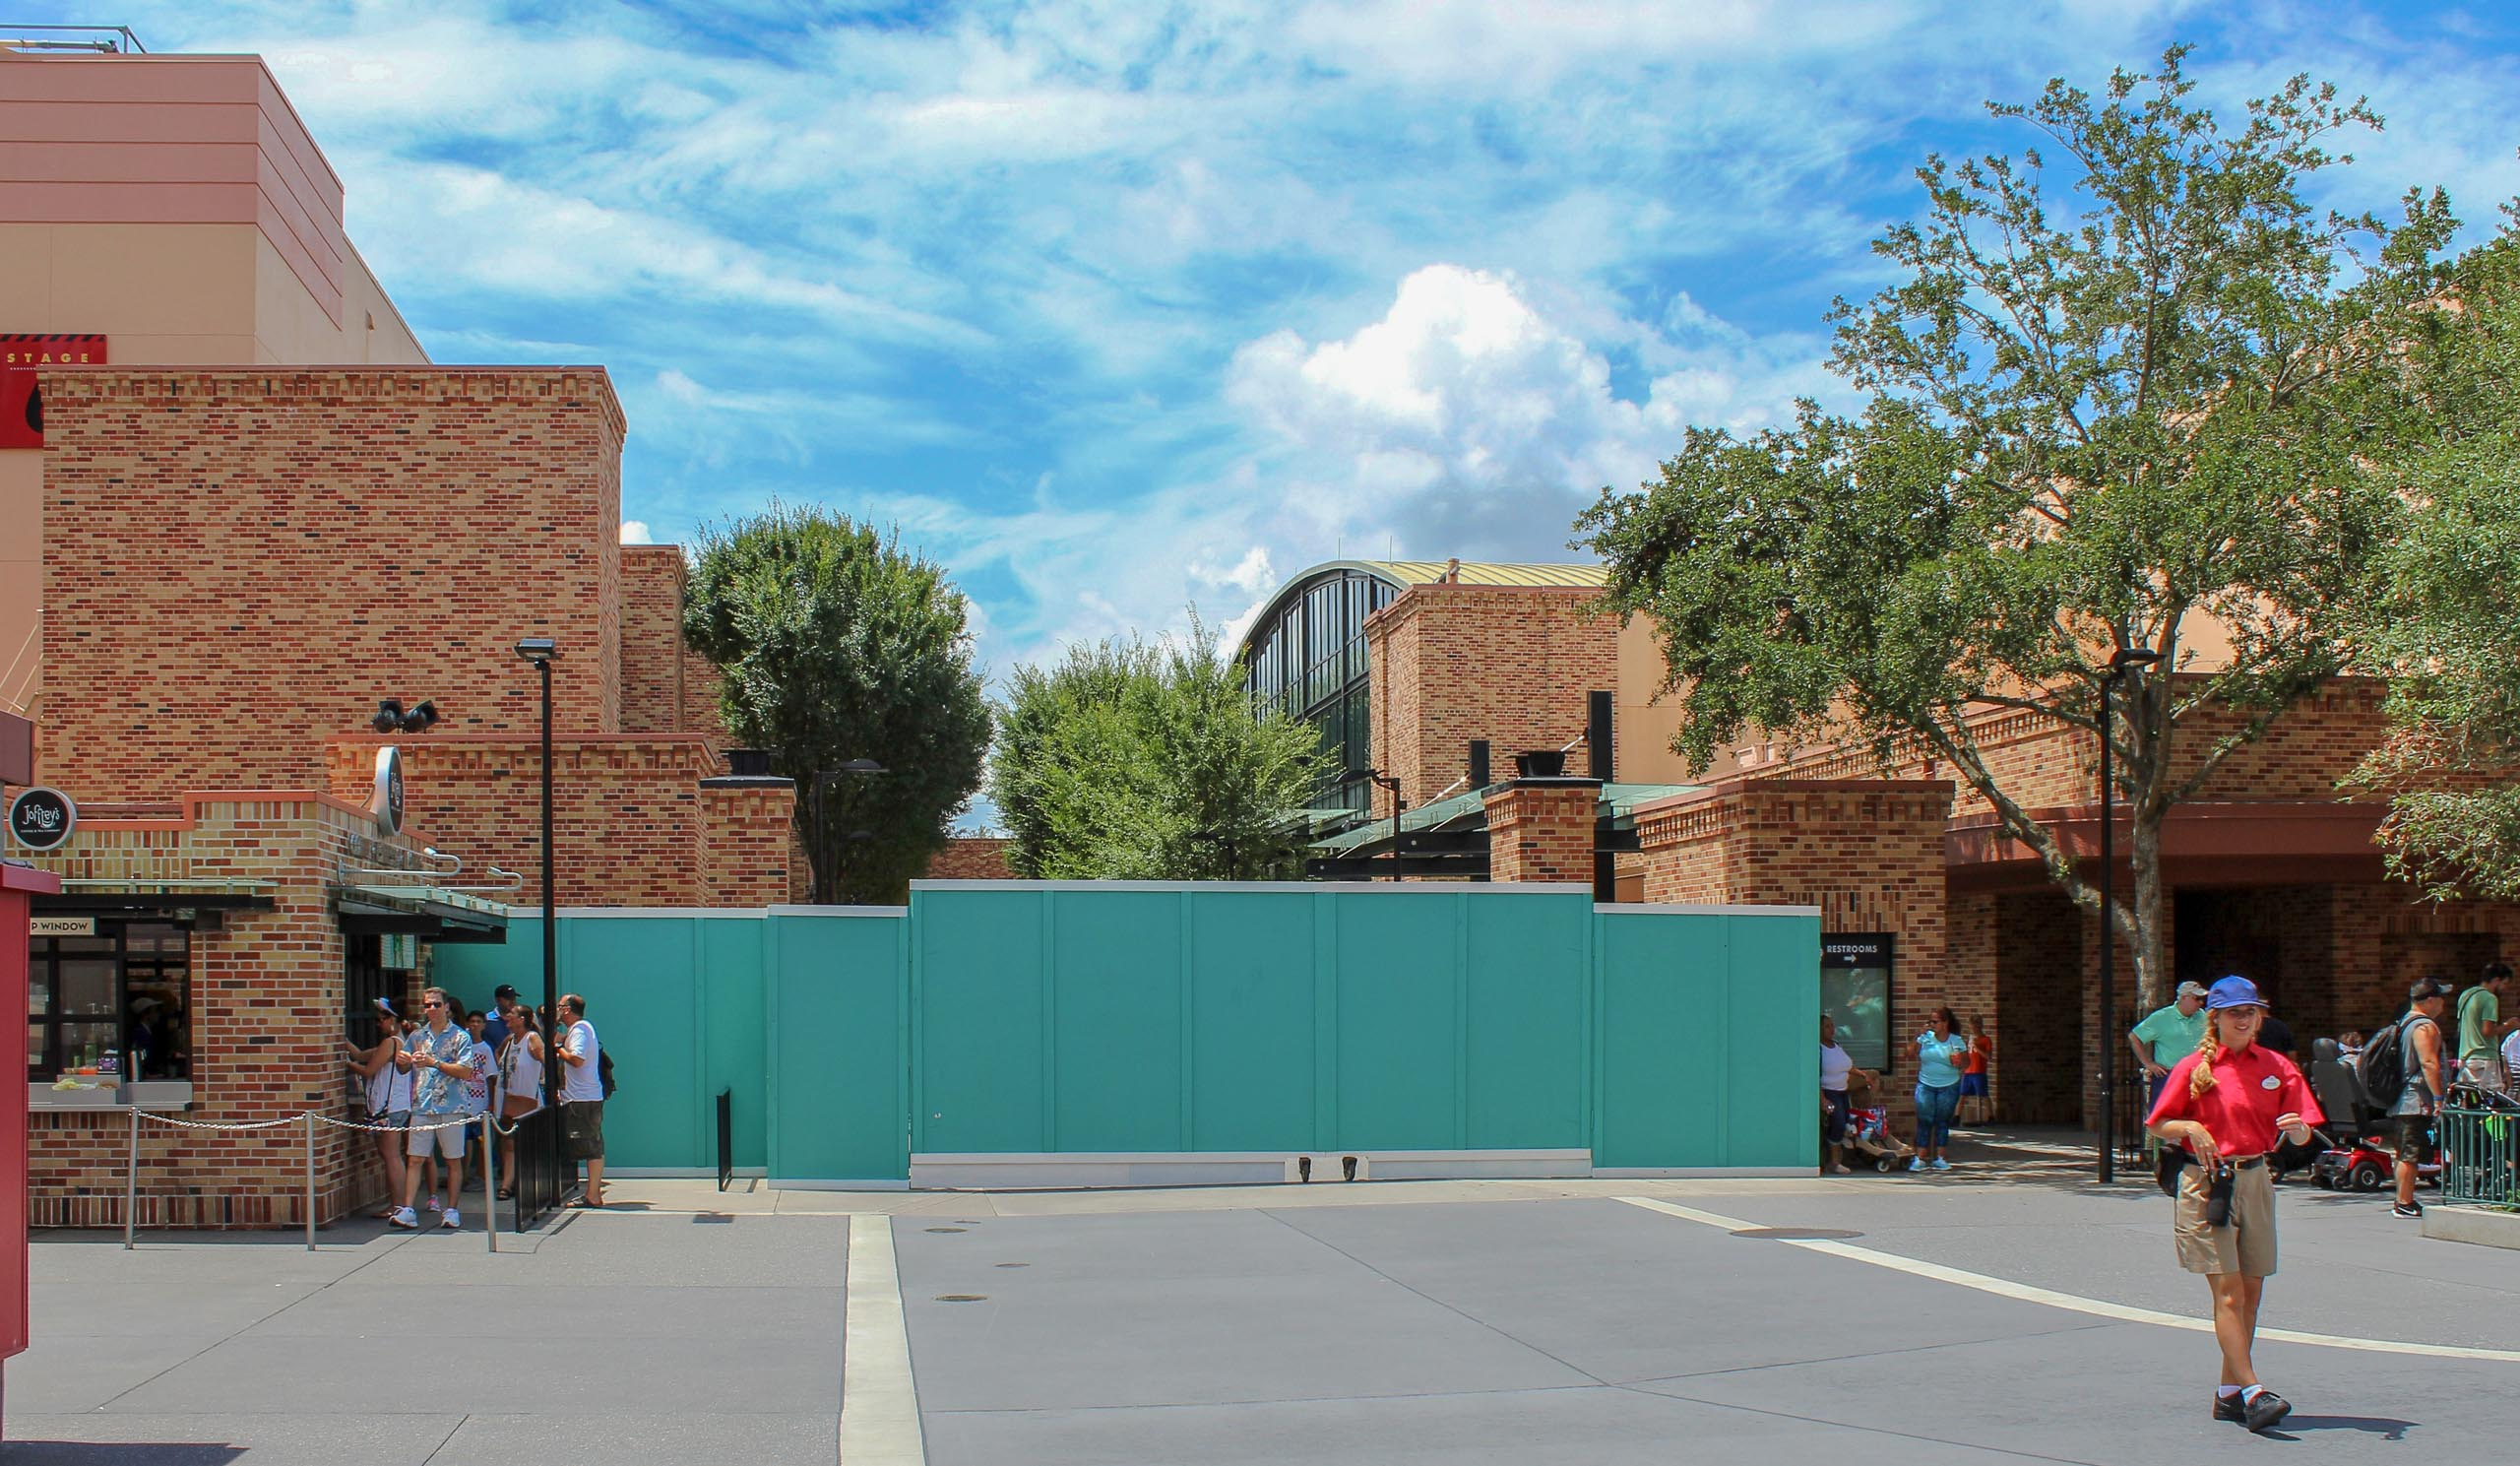 Pixar Place closed Photo by @WDWtraveler